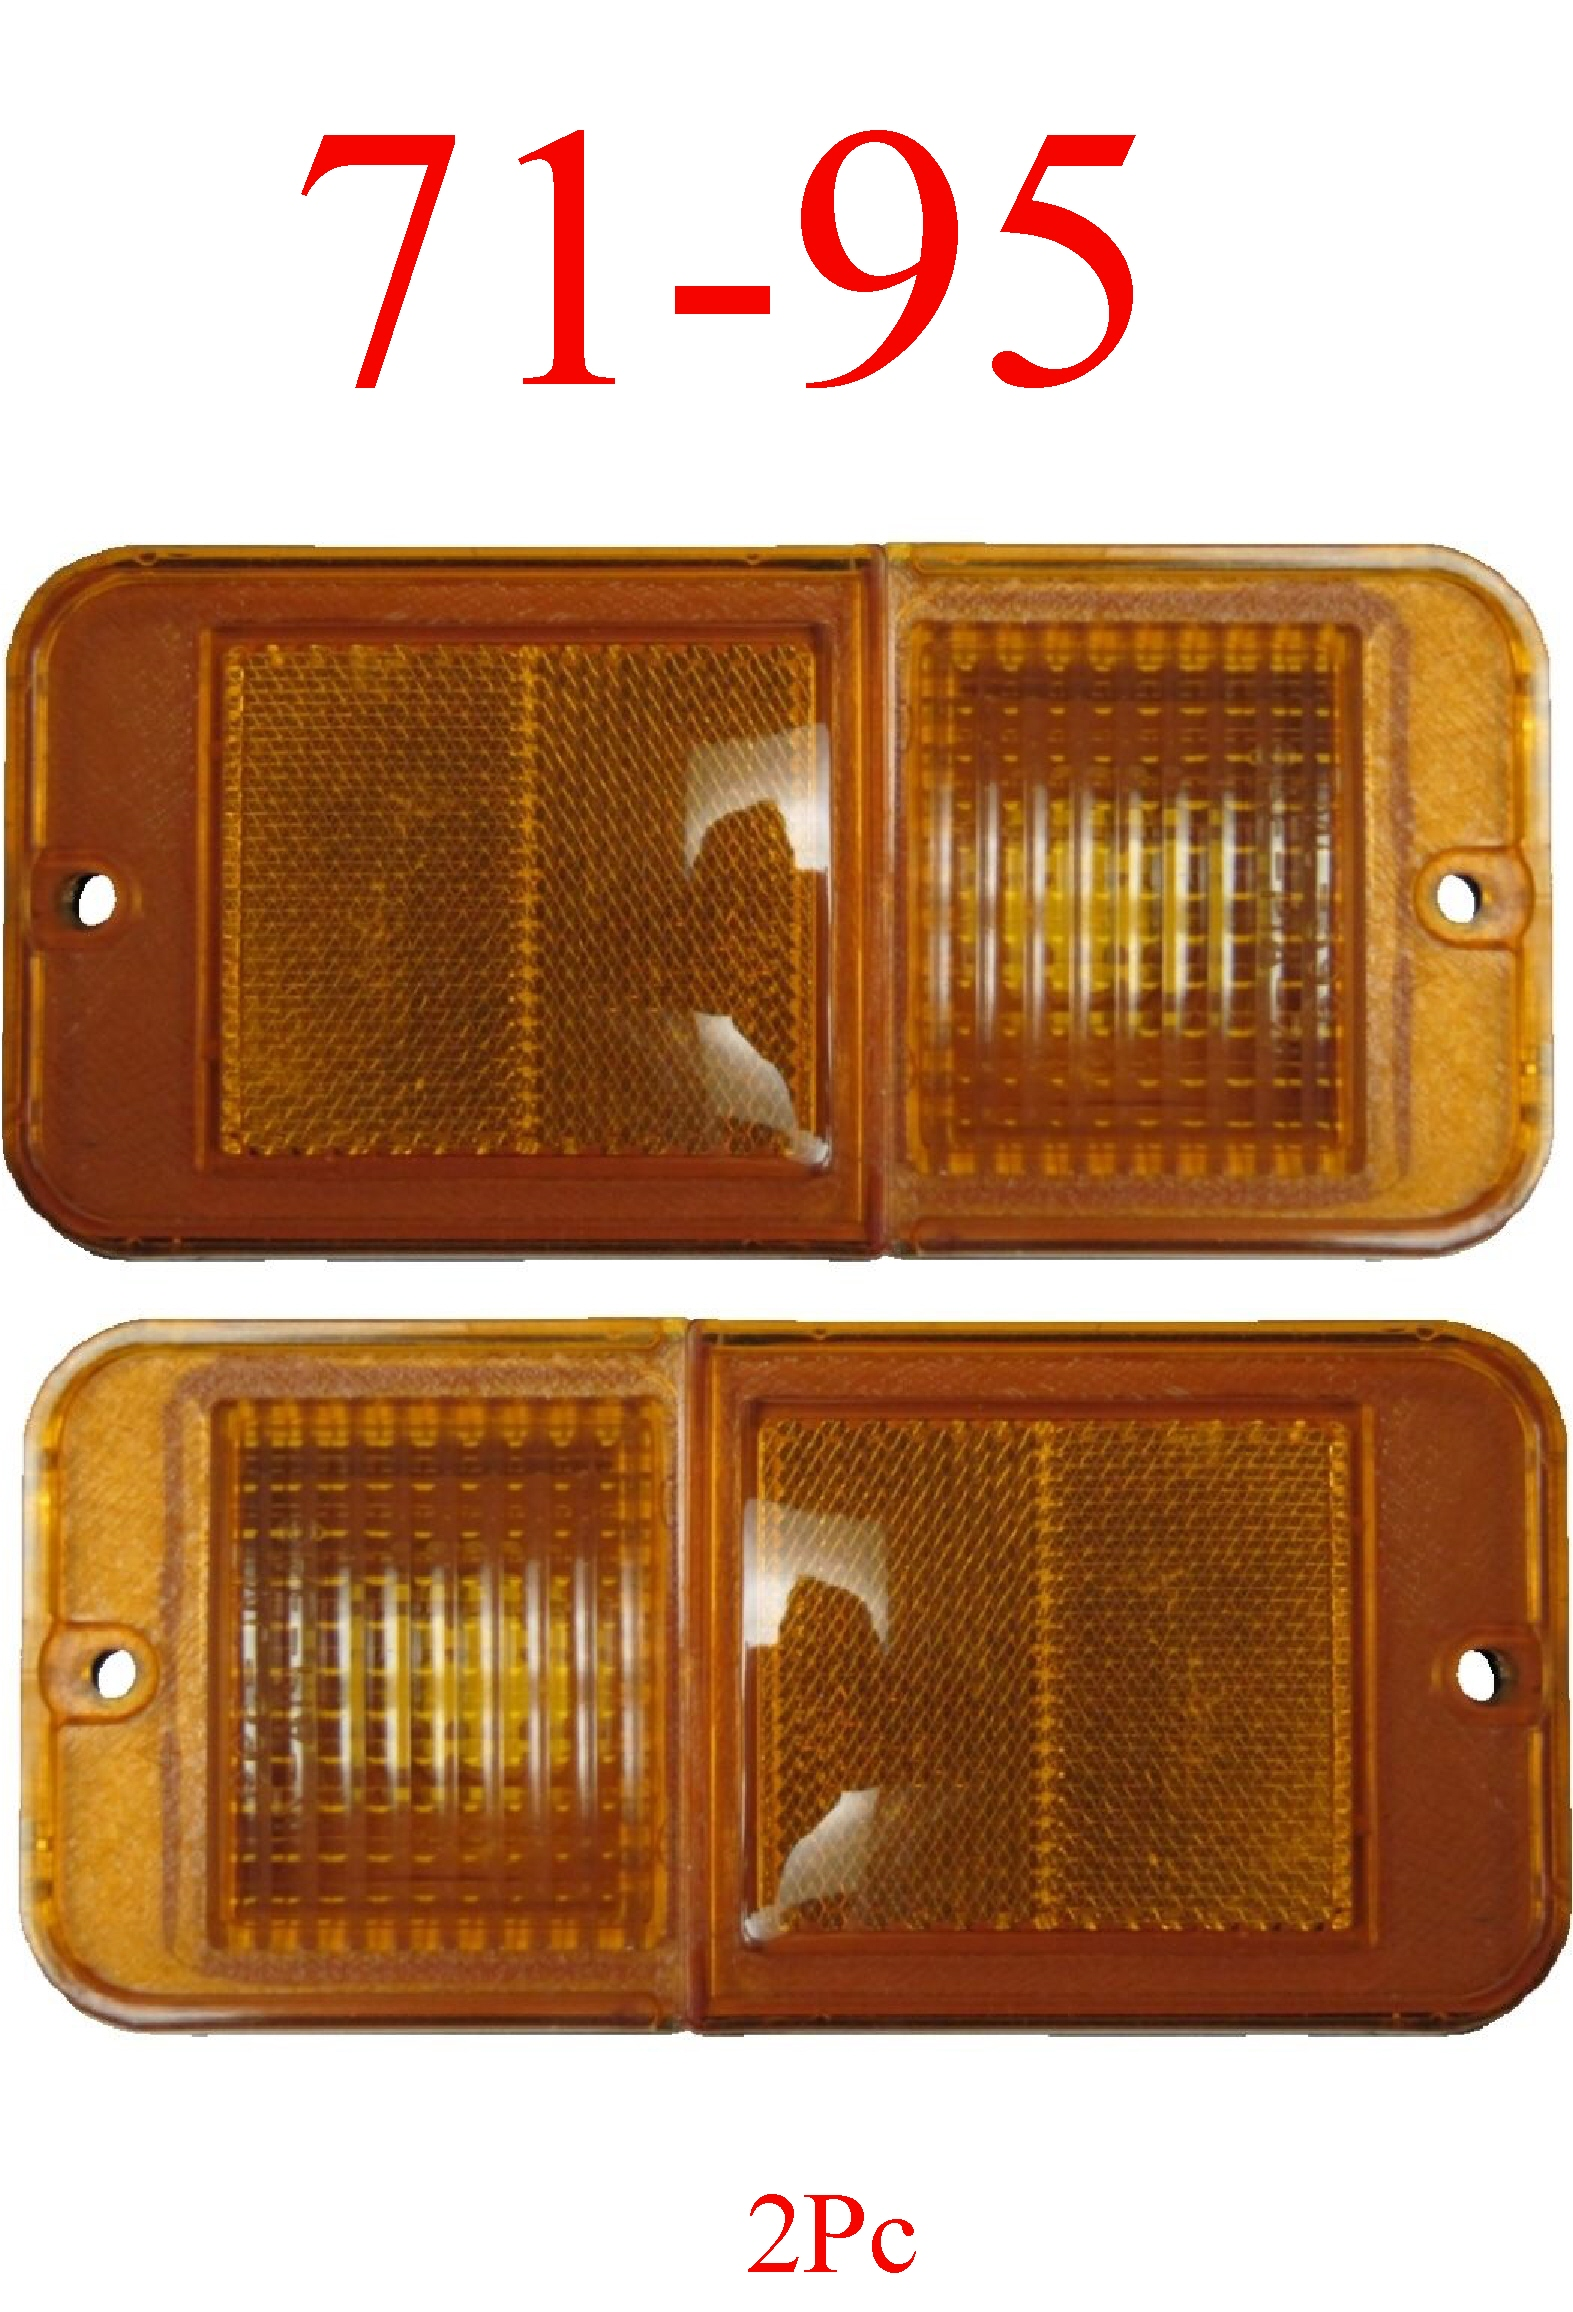 71-95 Chevy Van 2Pc Standard Amber Front Side Lights